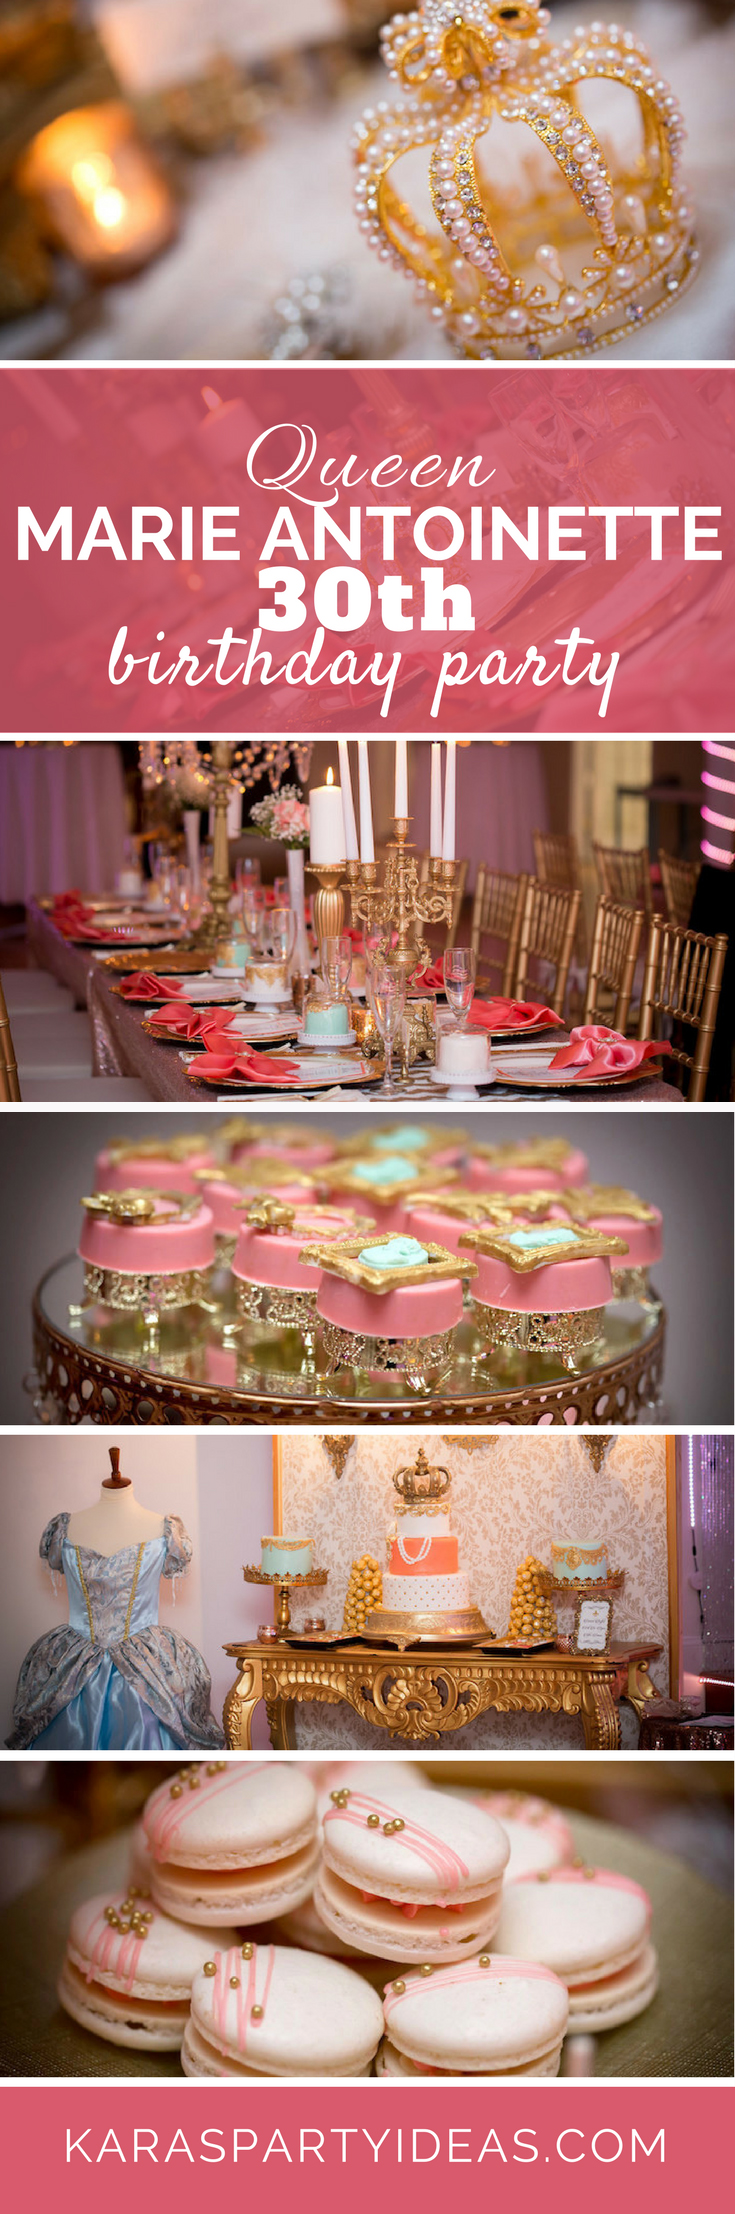 Queen Marie Antoinette 30th Birthday Party Via Karas Ideas